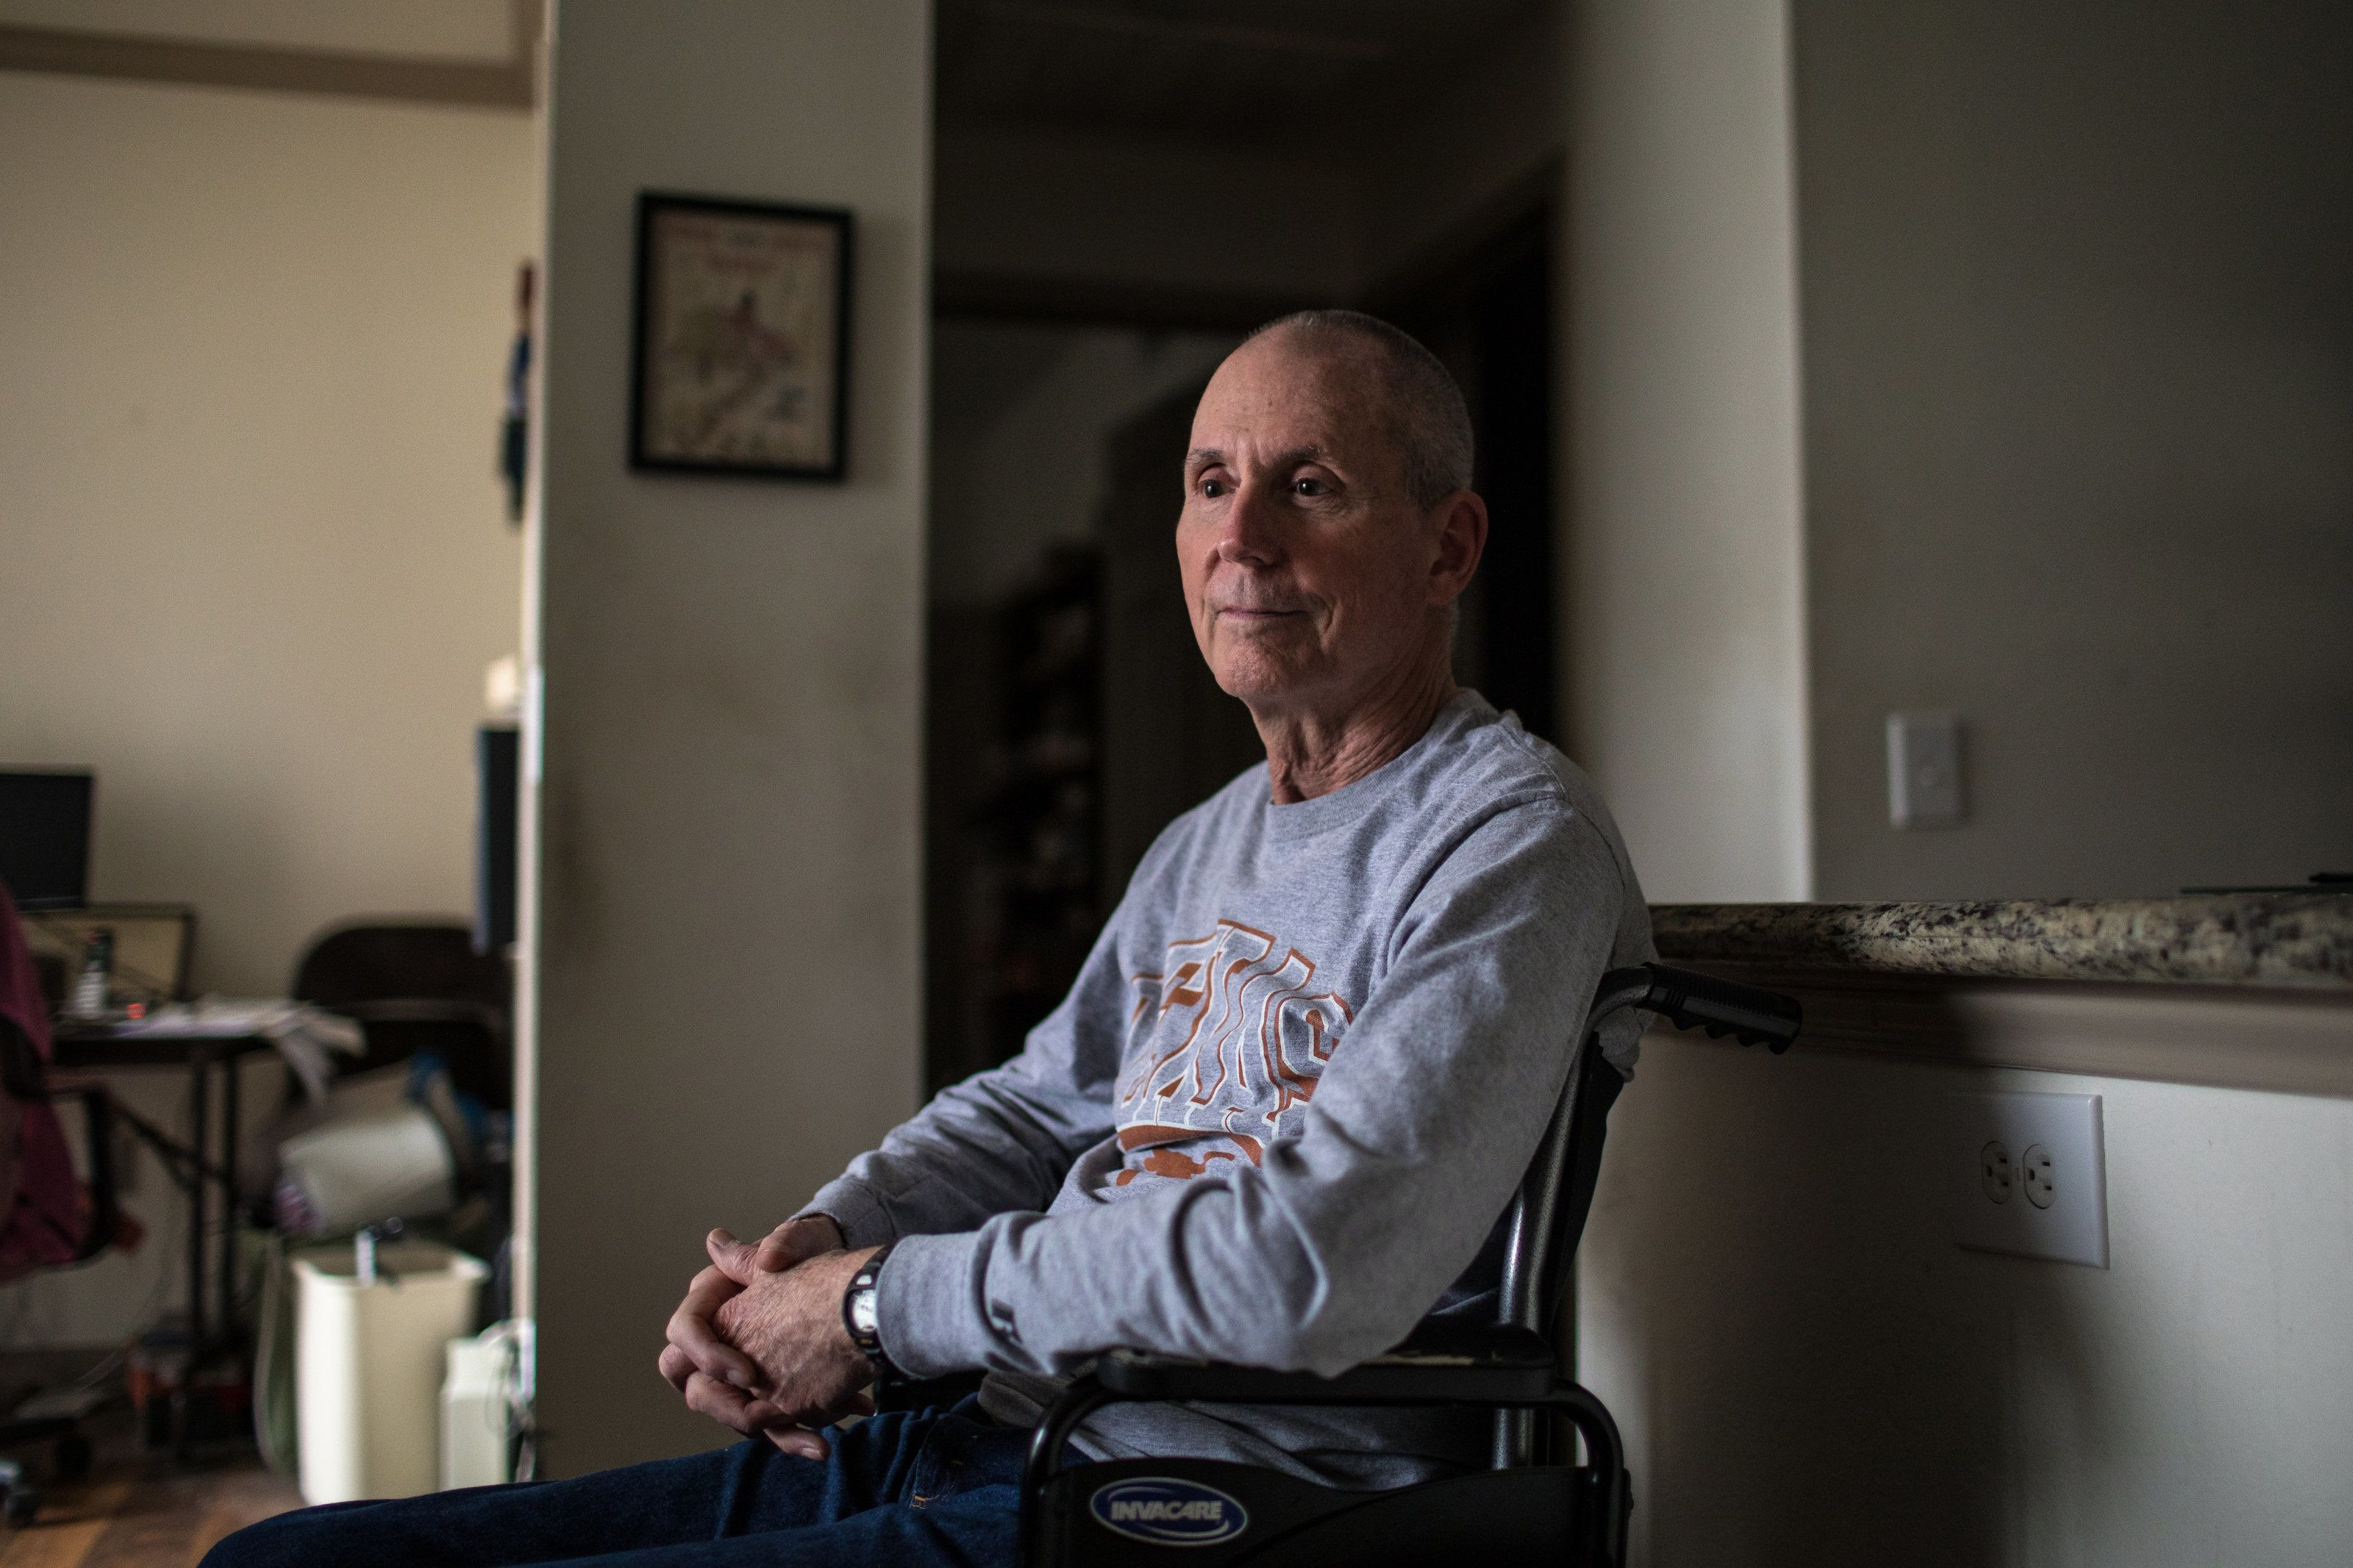 Chuck Yarling, 72, at his apartment in Austin, Tex. on Feb. 23, 2018. Yarling, a long-time triathlete who contracted West Nile virus in 2012, is determined to continue racing despite significant impairments to his mobility. (Tamir Kalifa for HuffPost)